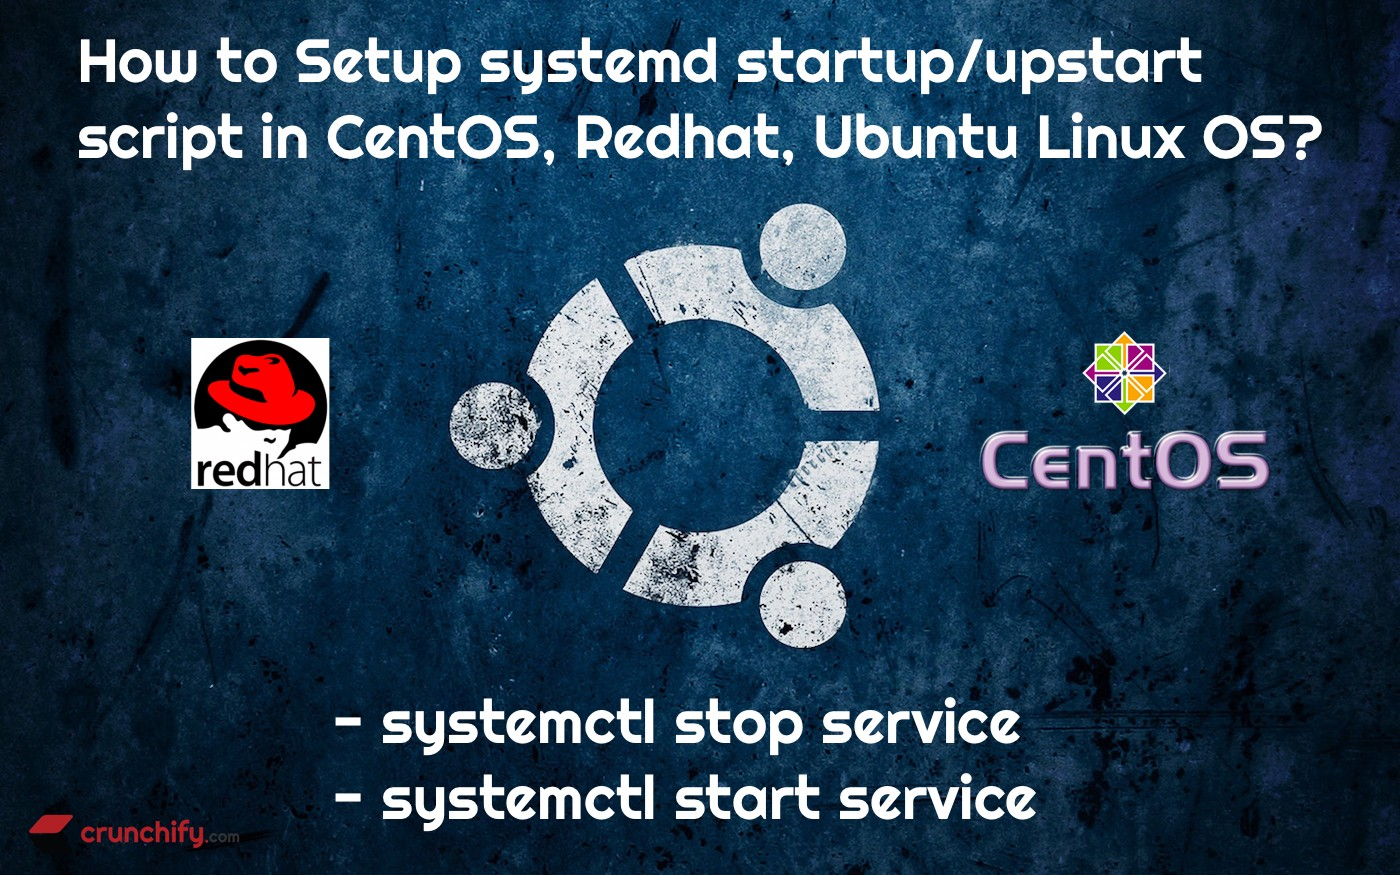 systemctl start/stop service: How to Setup Upstart Script